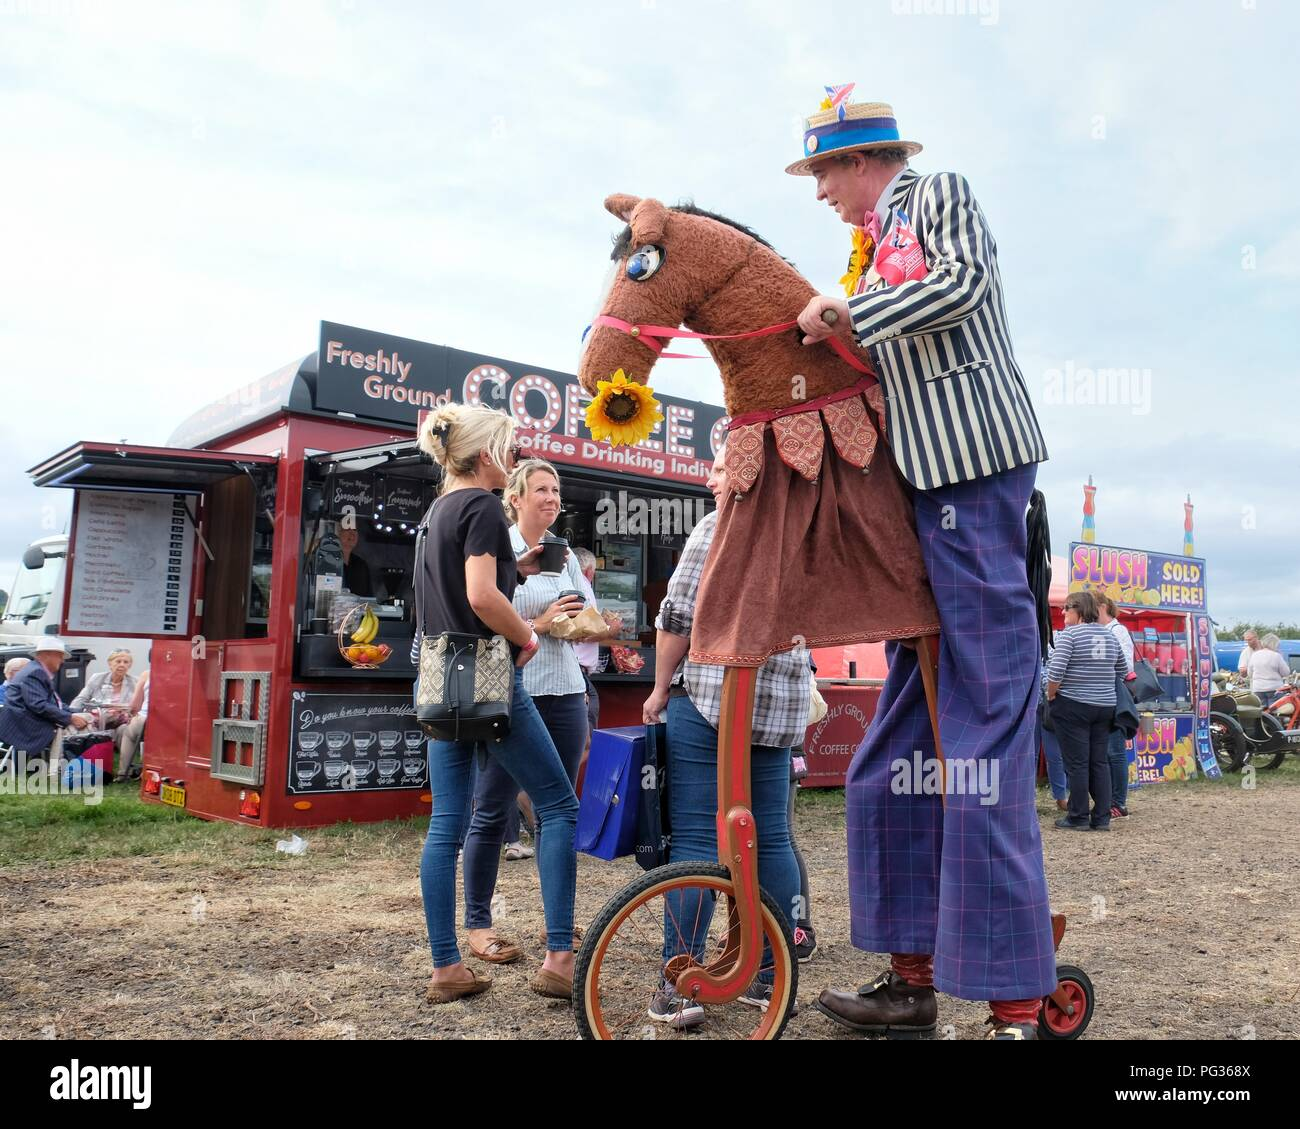 Melplash Agricultural Show, Bridport, Dorset, UK. 23 August 2018. Visitors enjoy one of the performance artists at the Melplash Agricultural Show in Bridport, Dorset.The one day agricultural show is a showcase and celebration for local farmers, producers, growers and craftspeople and is the South West's premier agricultural exhibition. Credit Tom Corban/Alamy Live News. - Stock Image